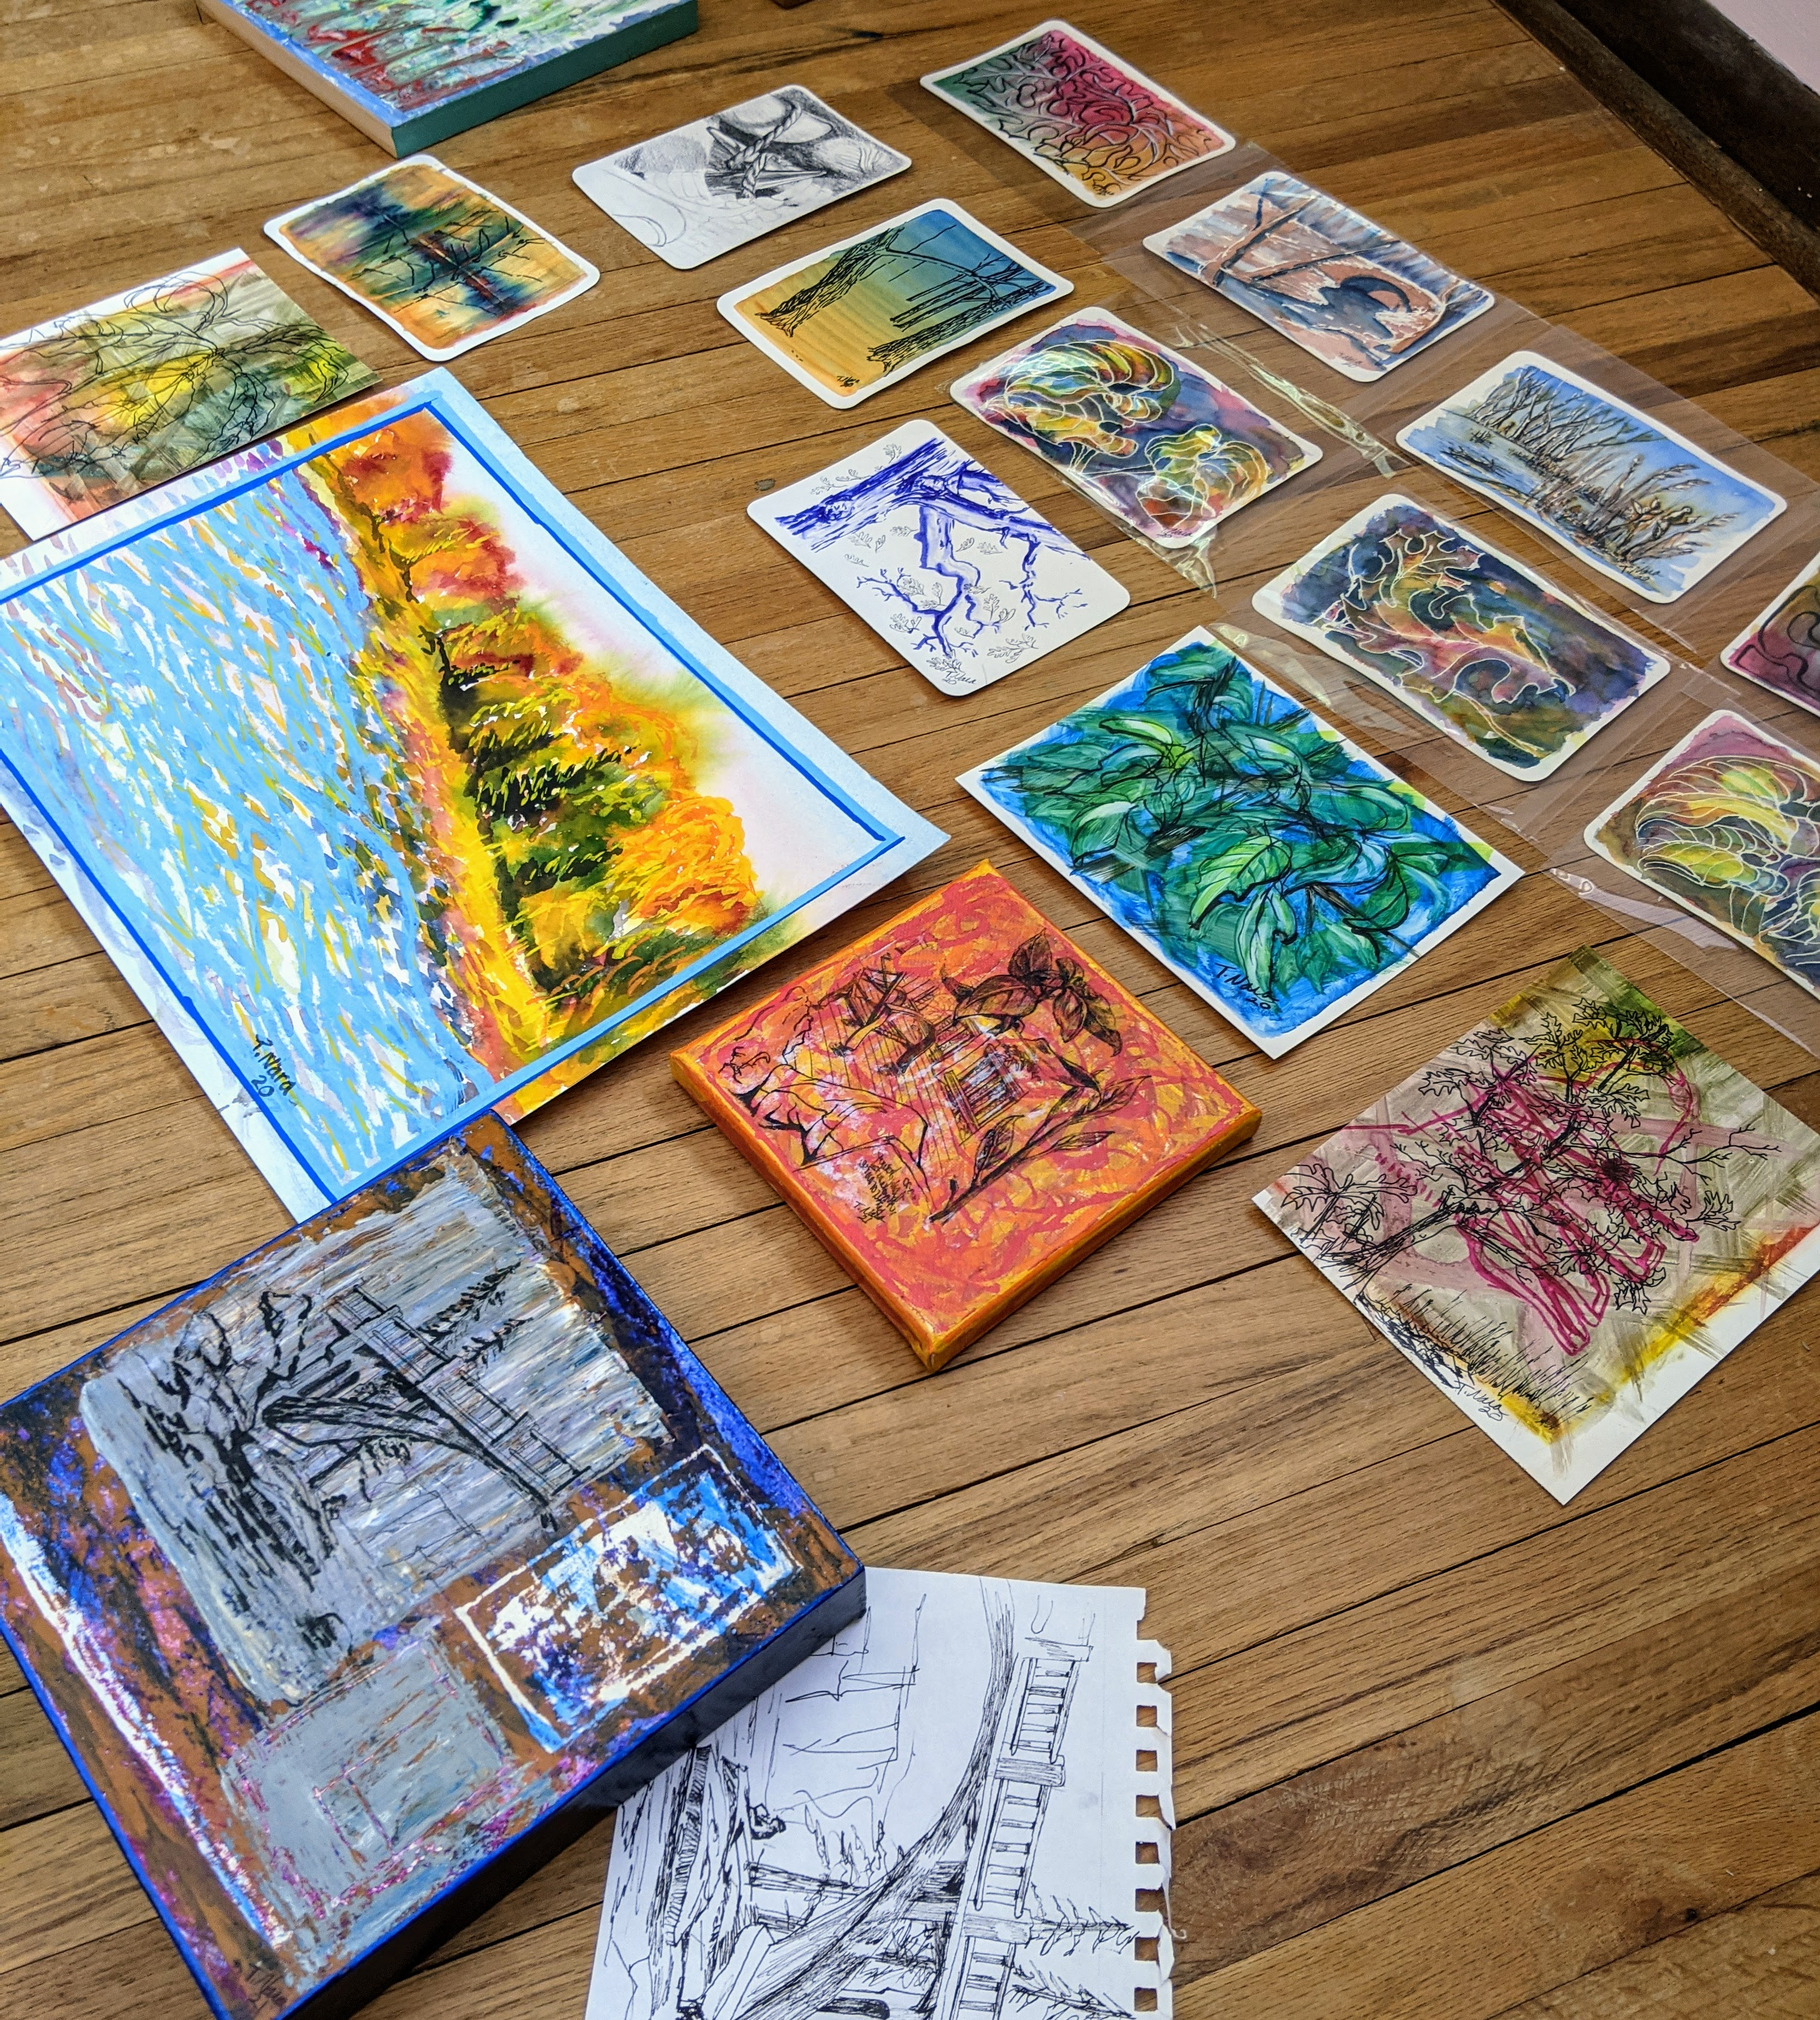 lots of paintings laid out on a wood floor